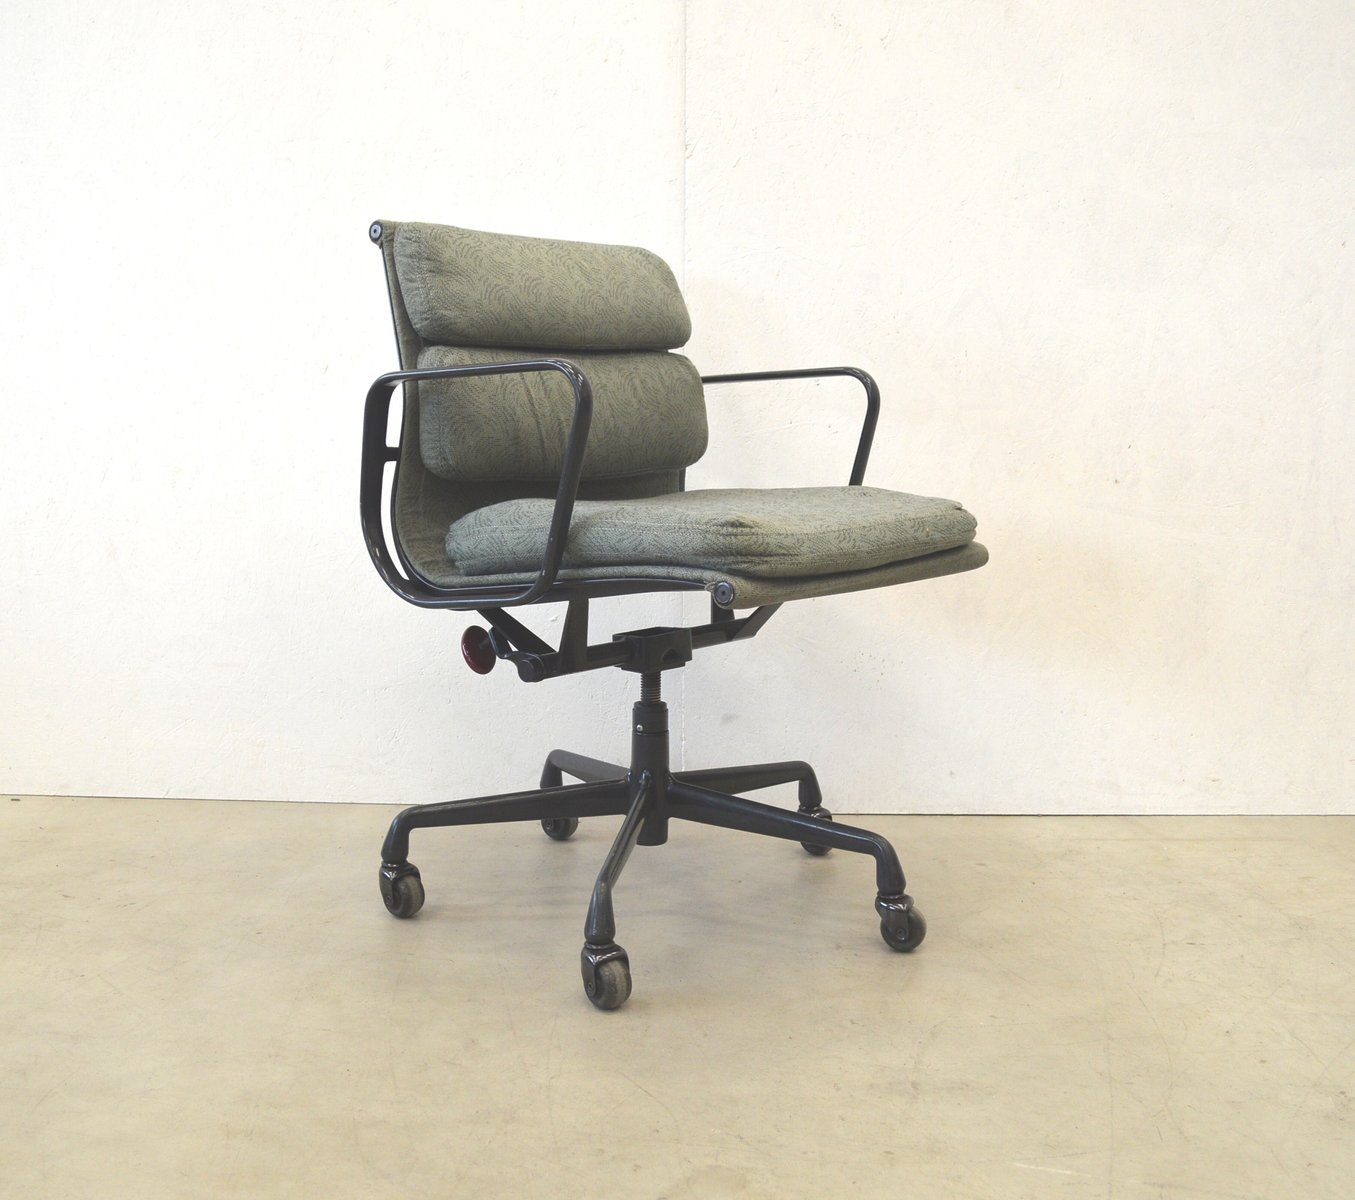 Herman Miller Eames Office Chair American Ea217 Aluminum Office Chair By Charles And Ray